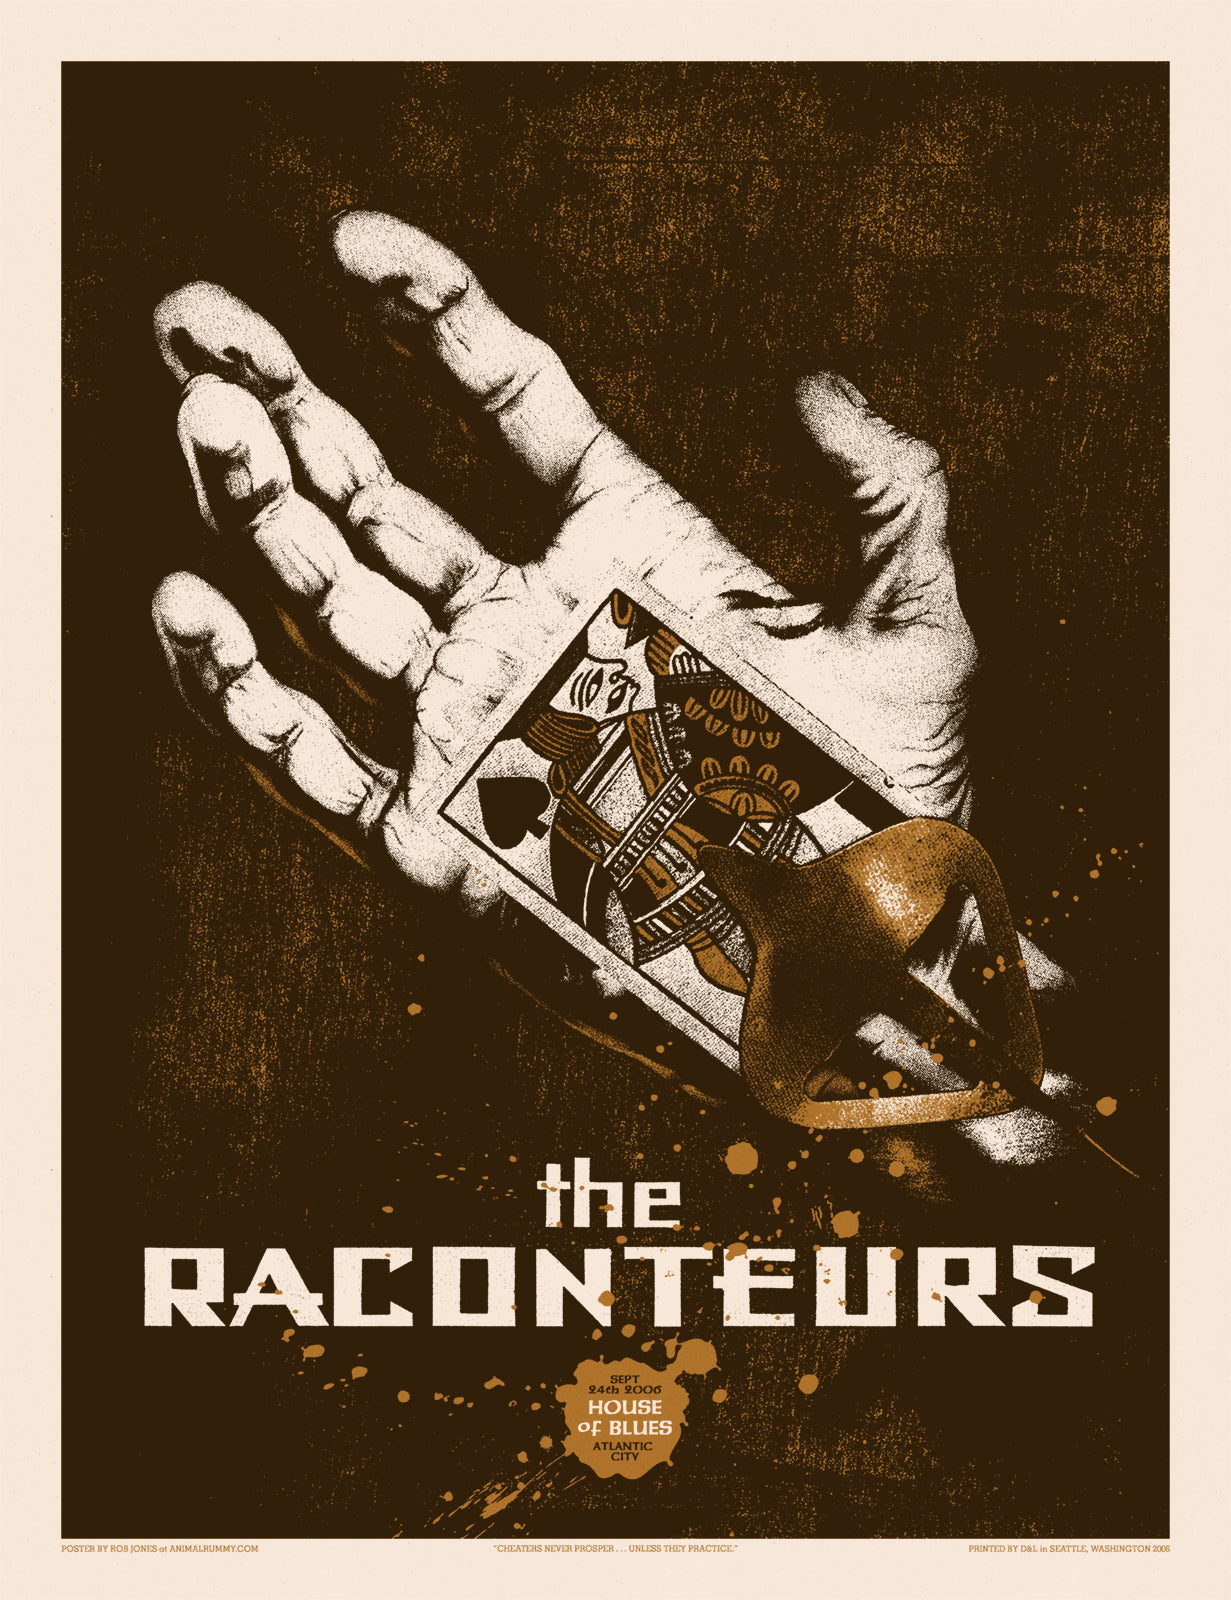 The Raconteurs Atlantic City 2006